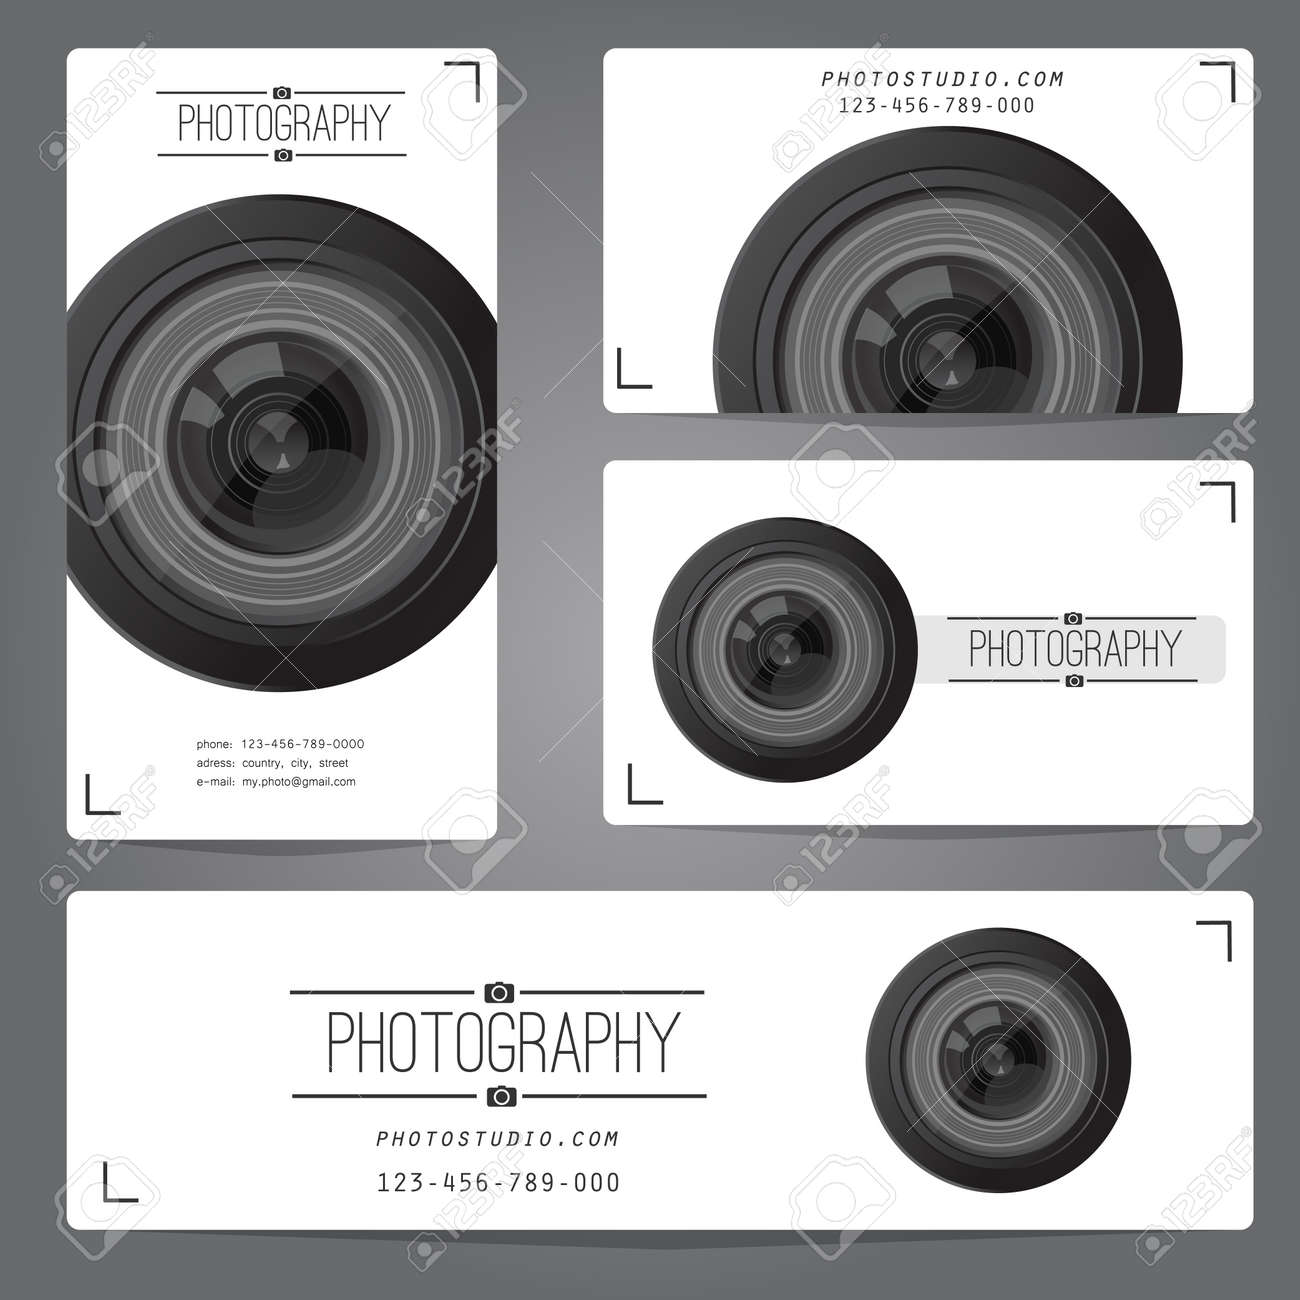 Photo studio logo and business card template. Vector illustration. - 41174479